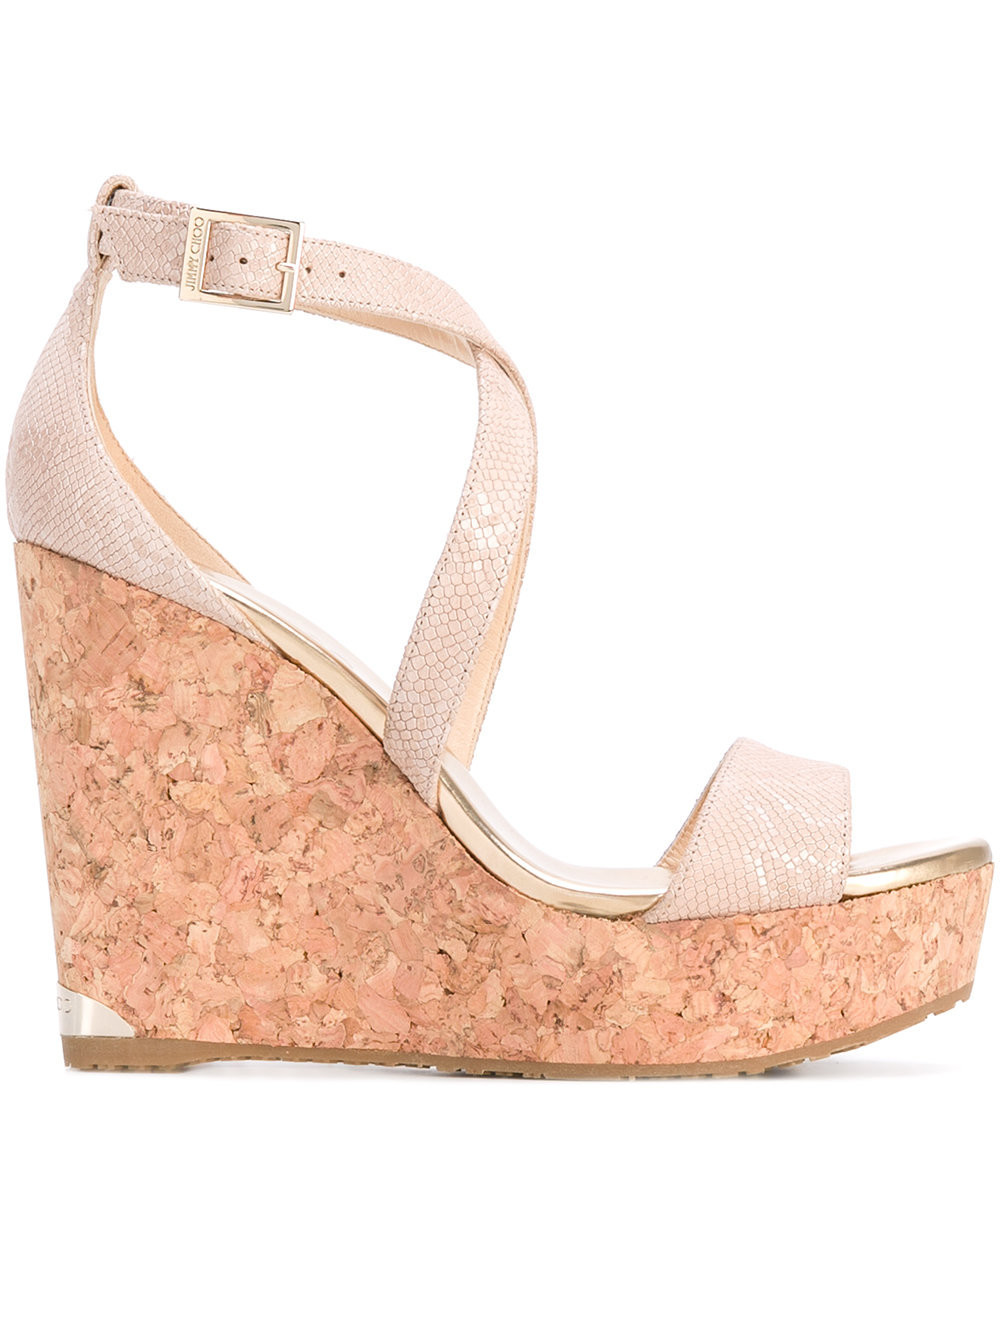 Jimmy Choo 'Portia' cork wedges - Nude & Neutrals